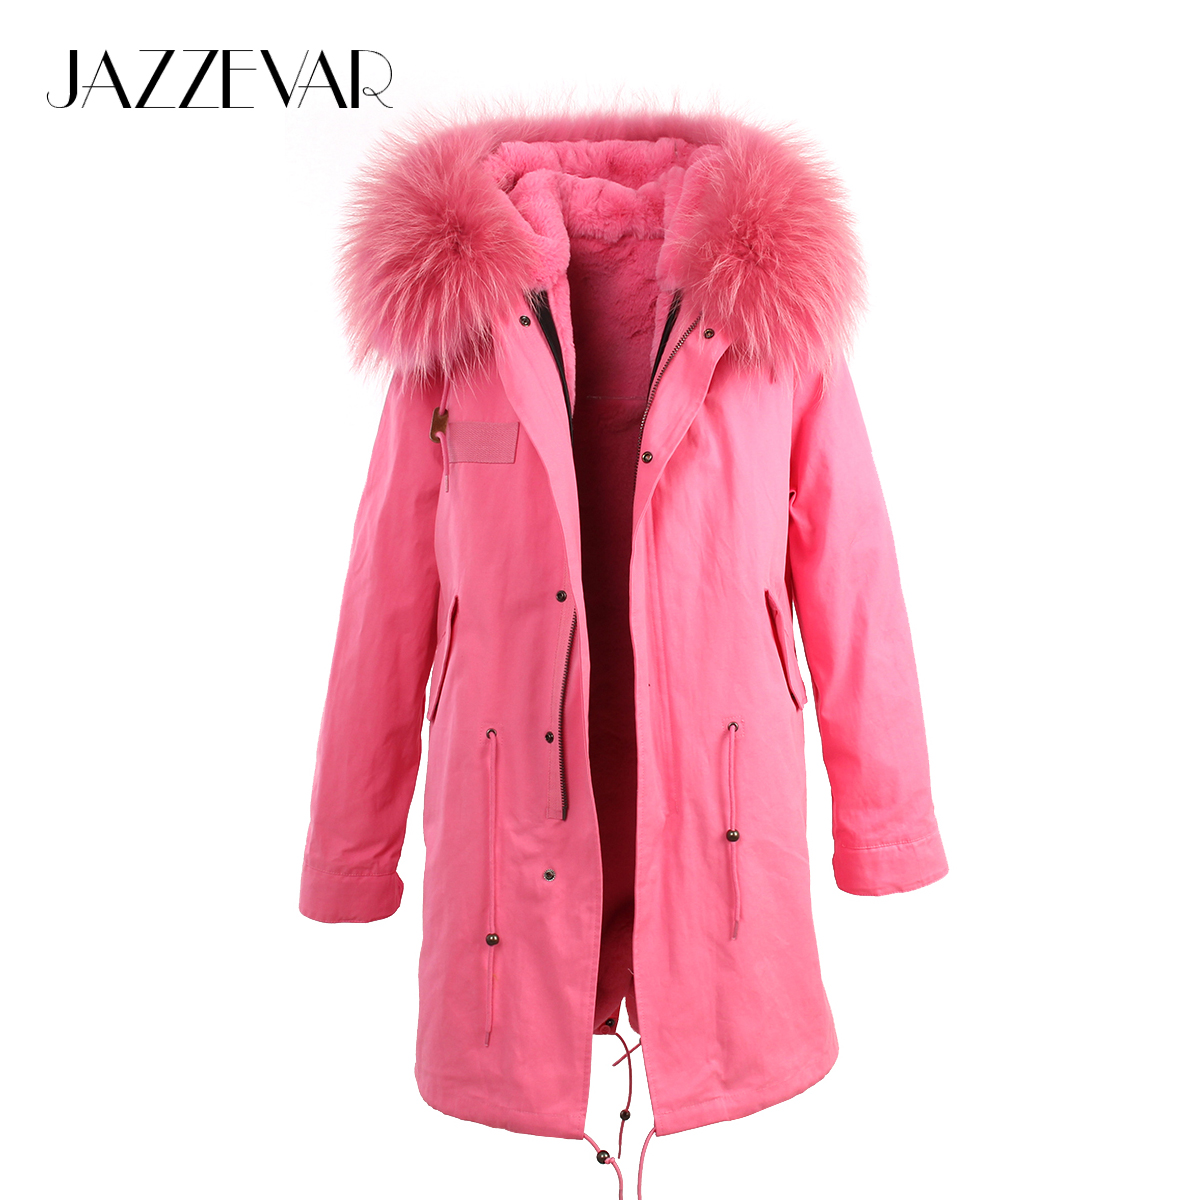 JAZZEVAR women's cute pink faux fur lined parkas with large raccoon fur collar hooded coat Military winter jackets good quality